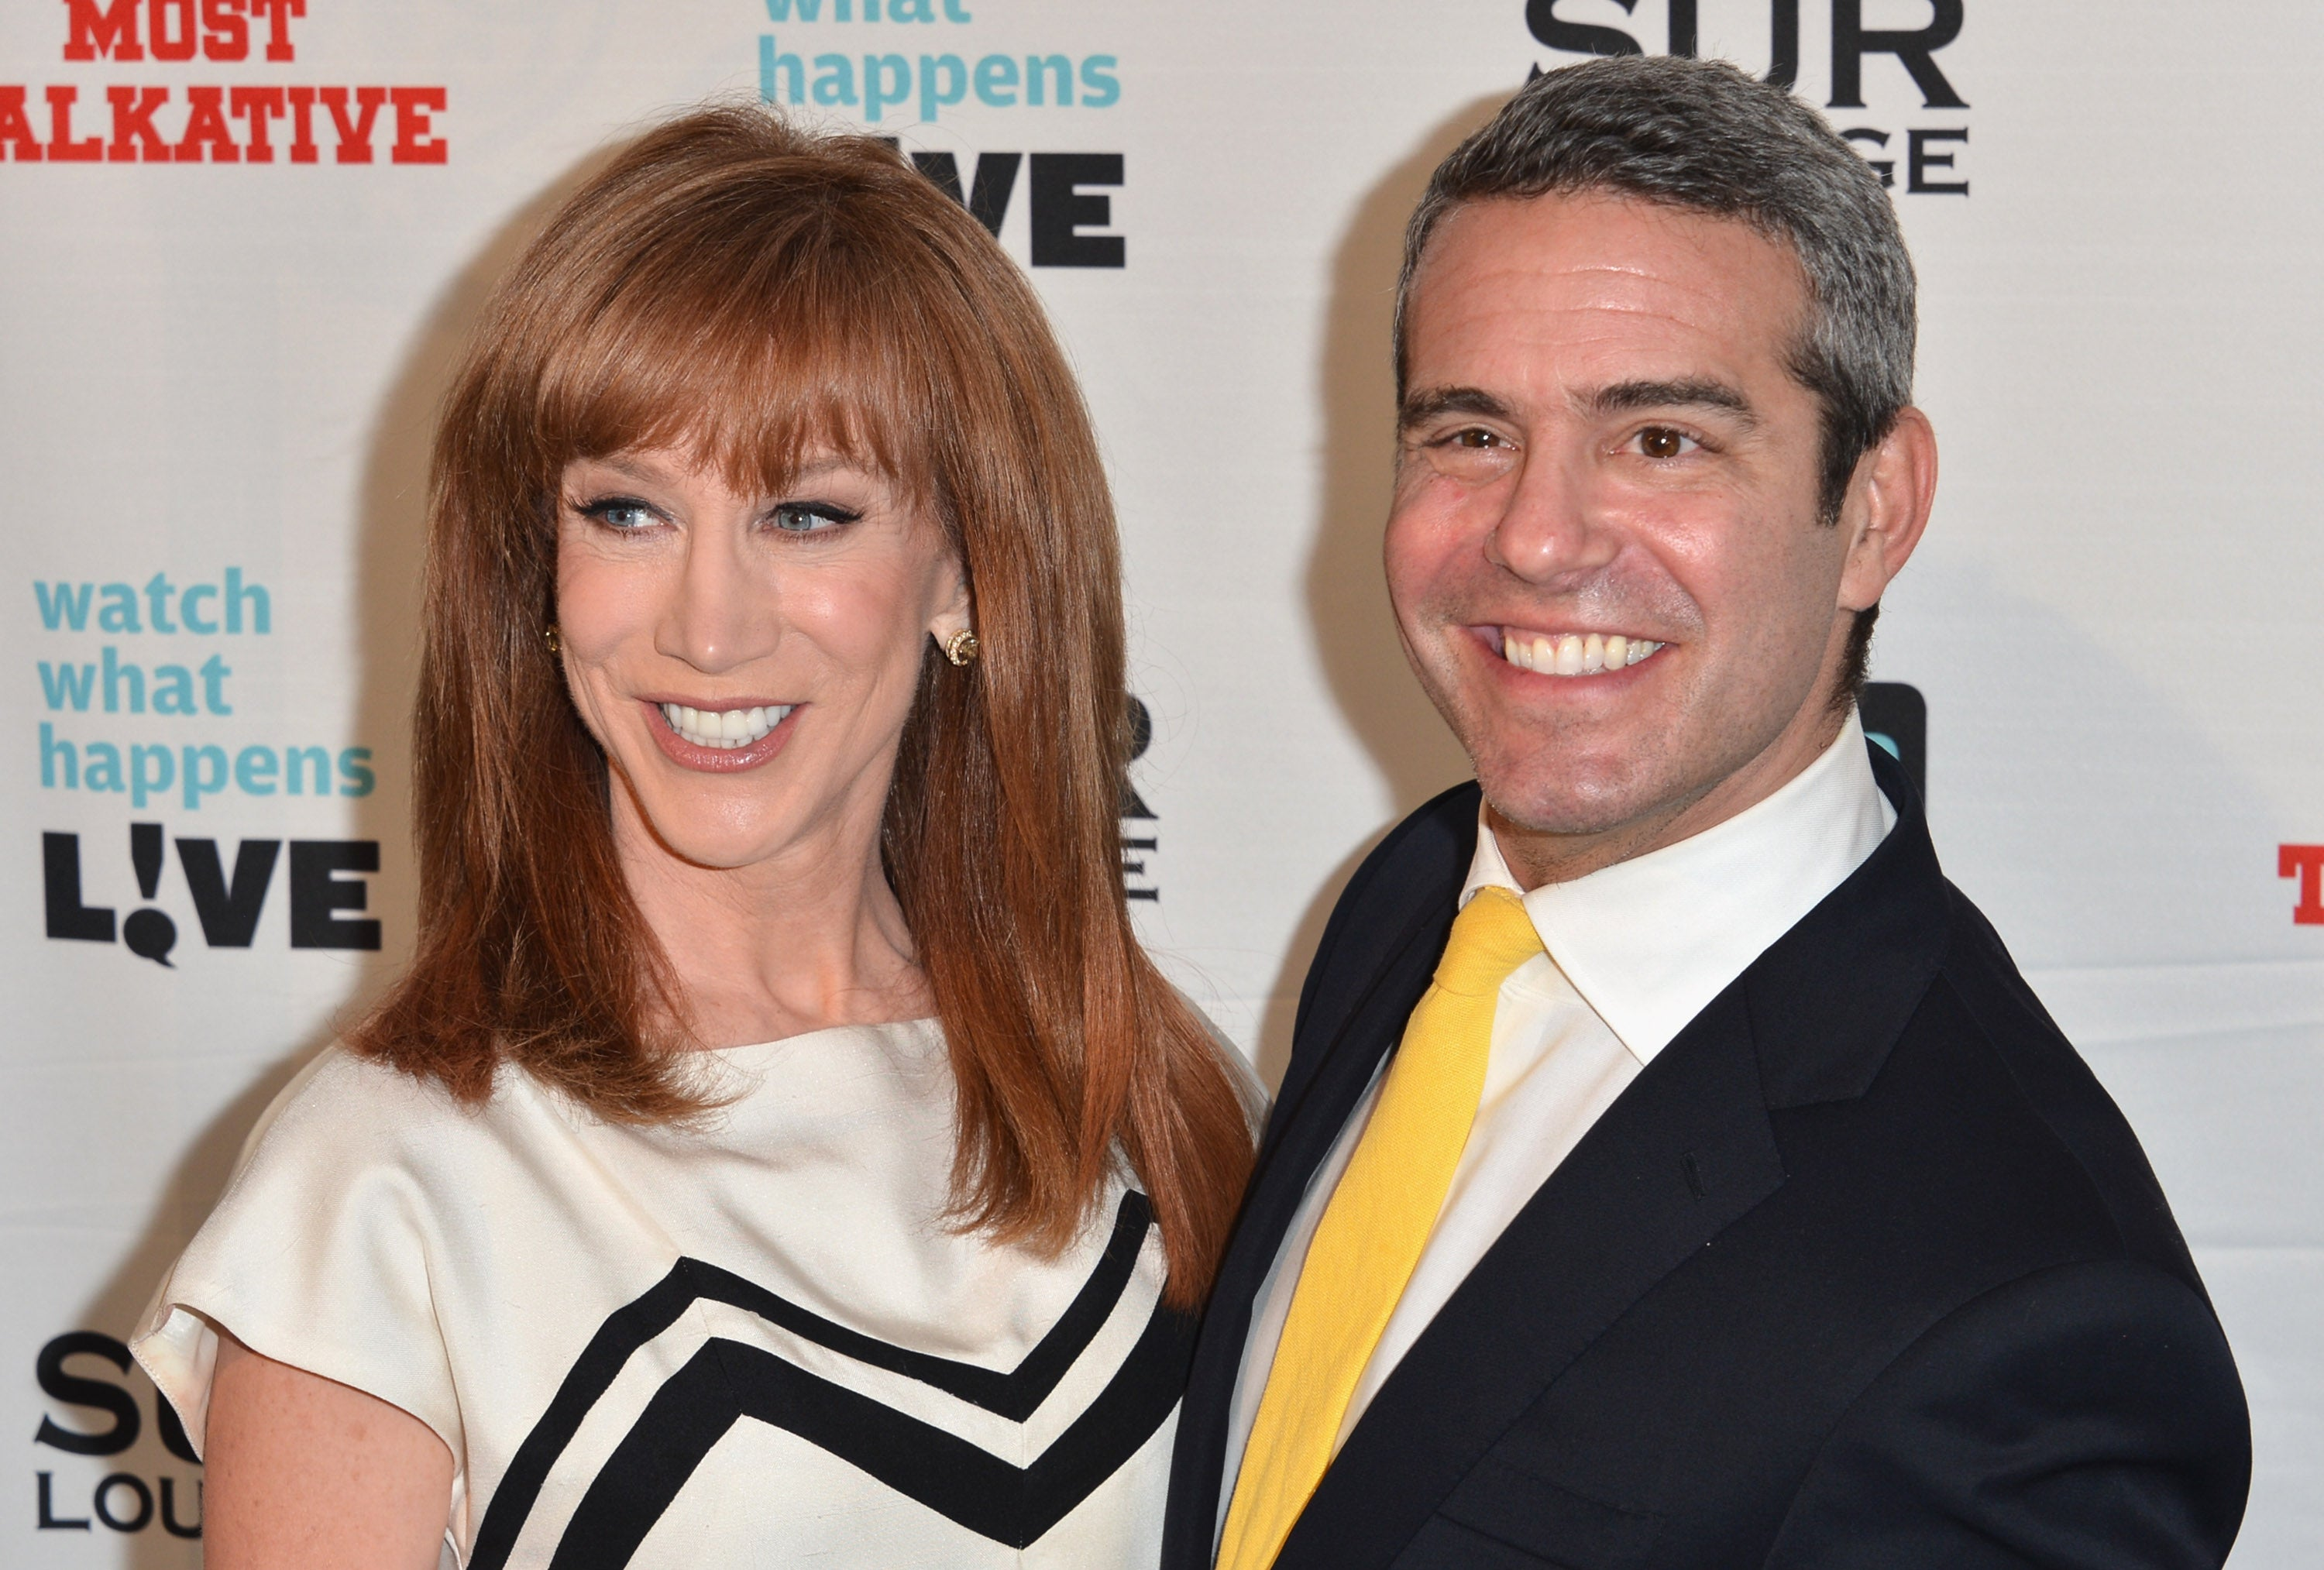 Andy Cohen Says Kathy Griffin Has Made 'Untrue and Sad' Claims About Him During Feud